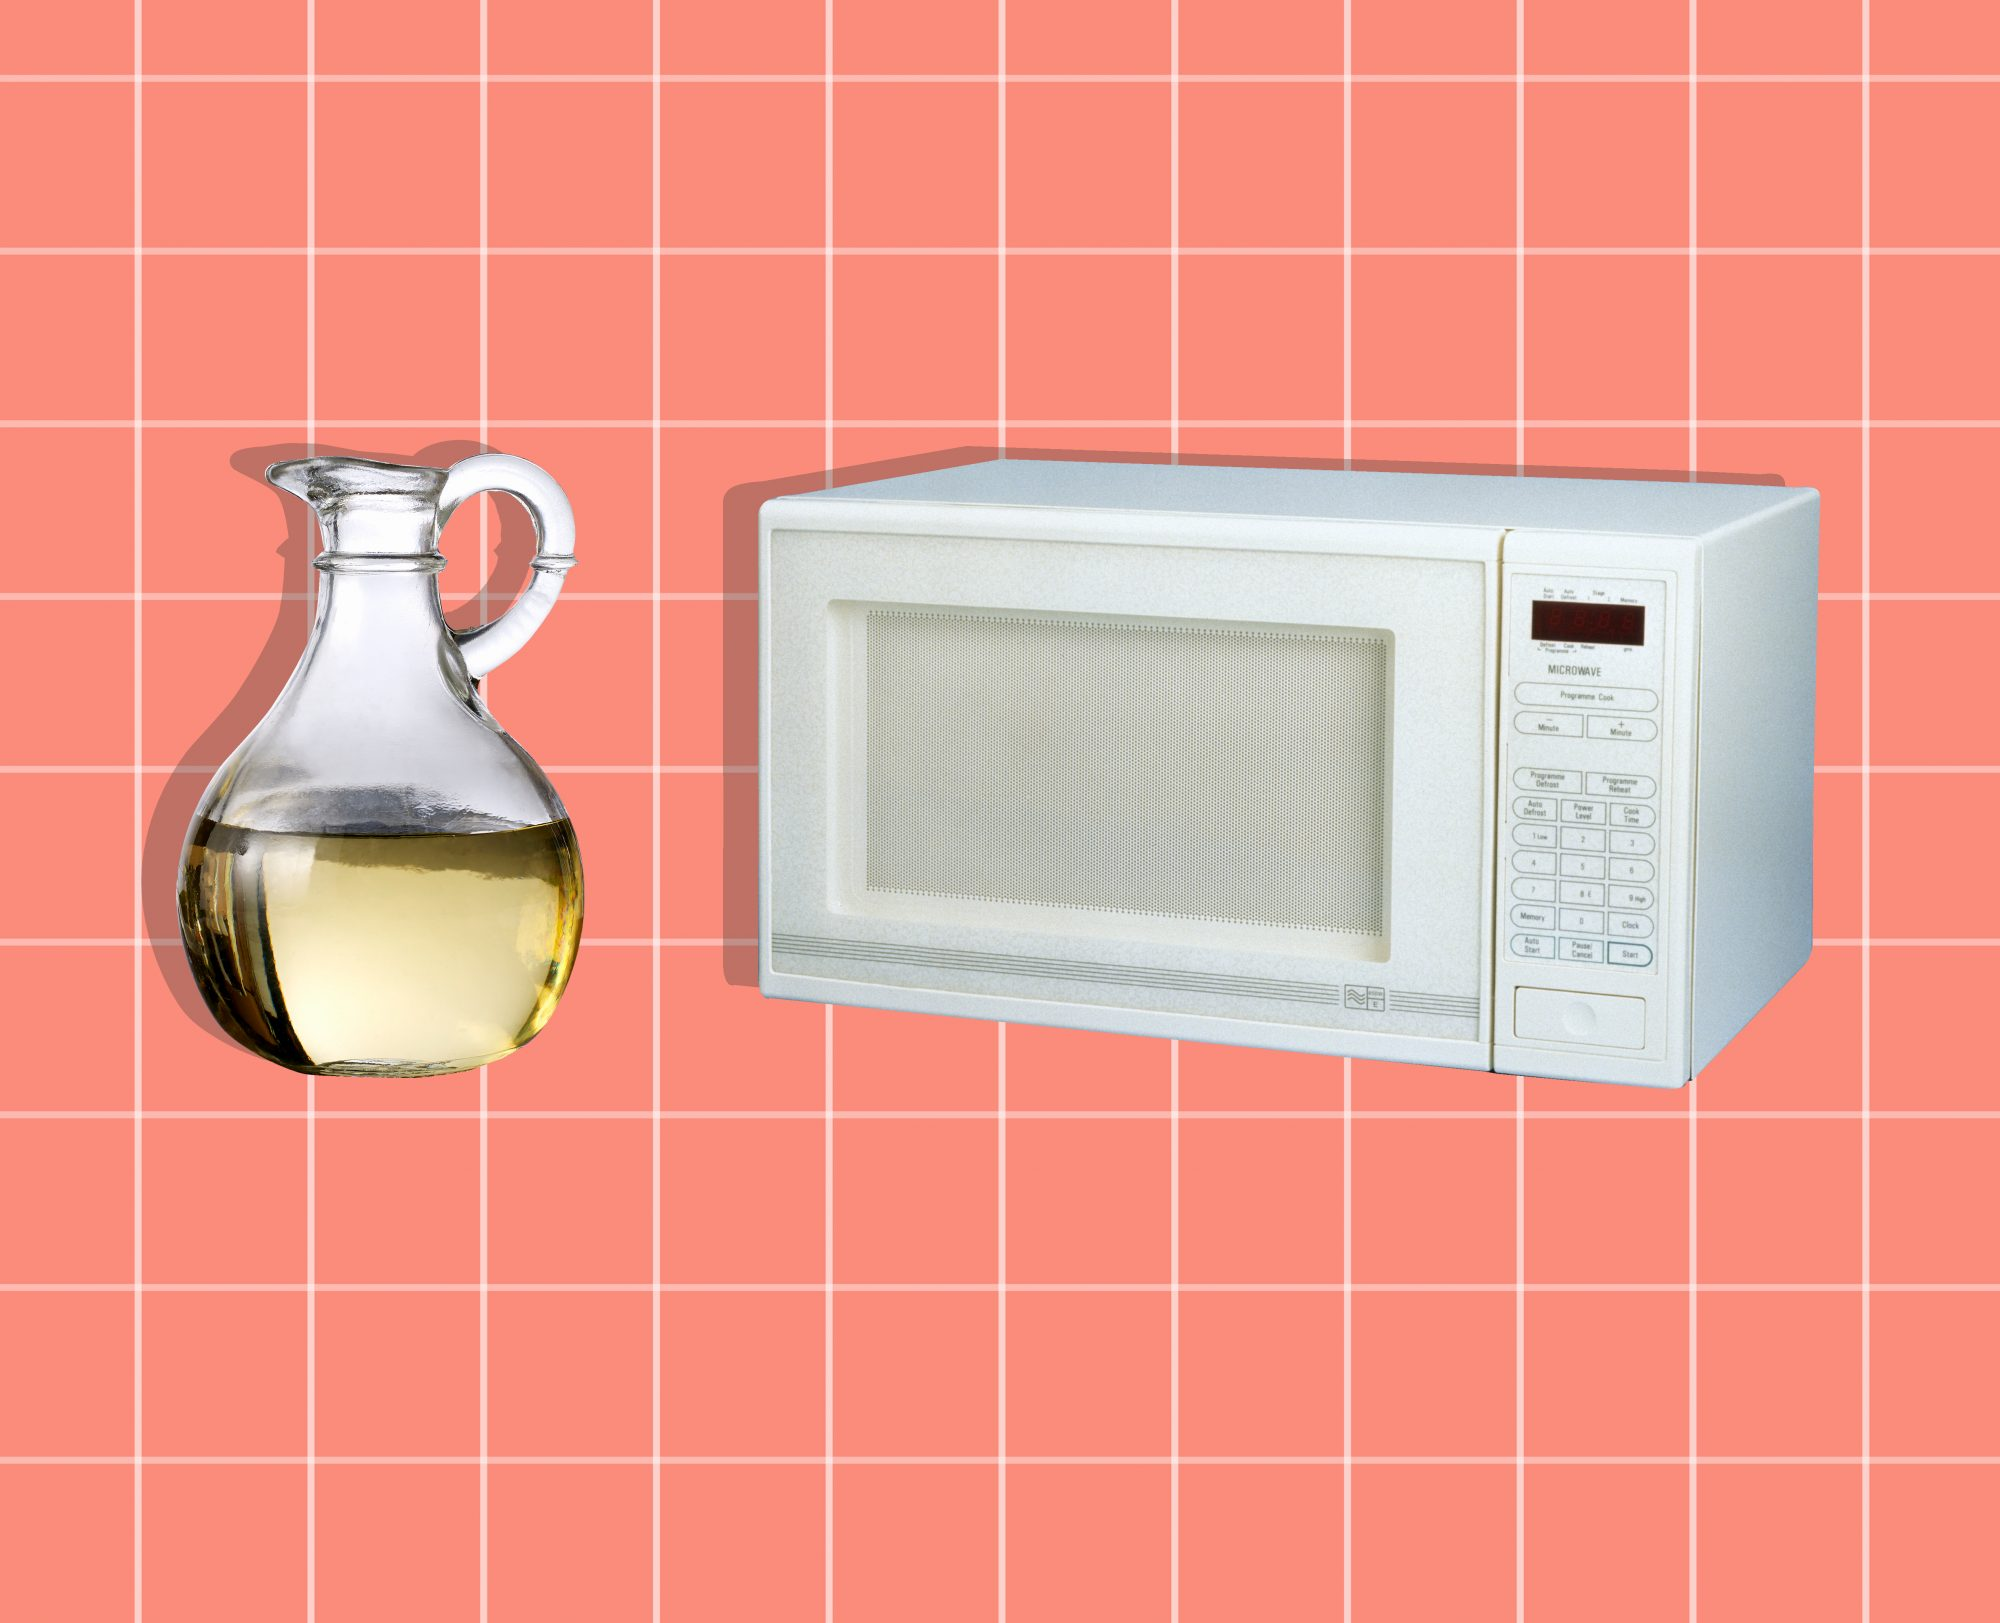 How To Clean A Microwave Step By